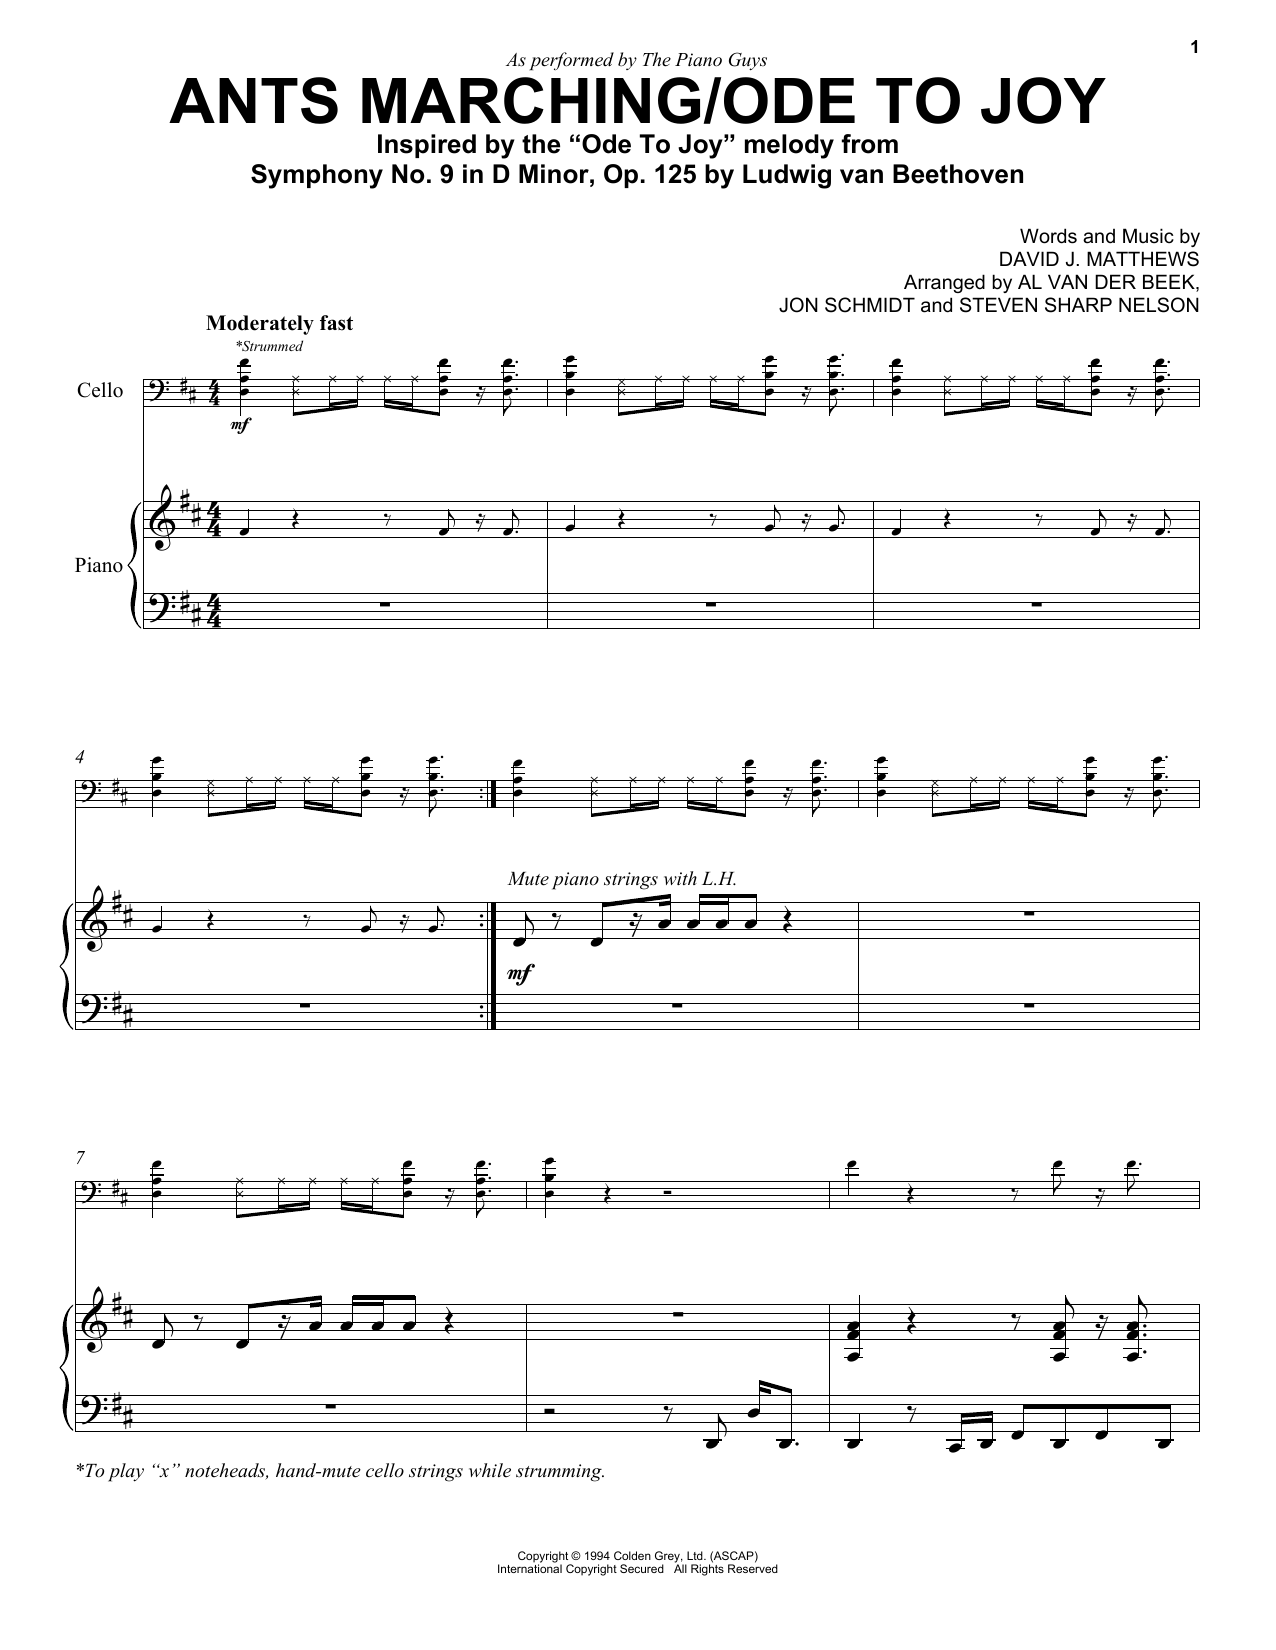 Download The Piano Guys 'Ants Marching/Ode To Joy' Digital Sheet Music Notes & Chords and start playing in minutes